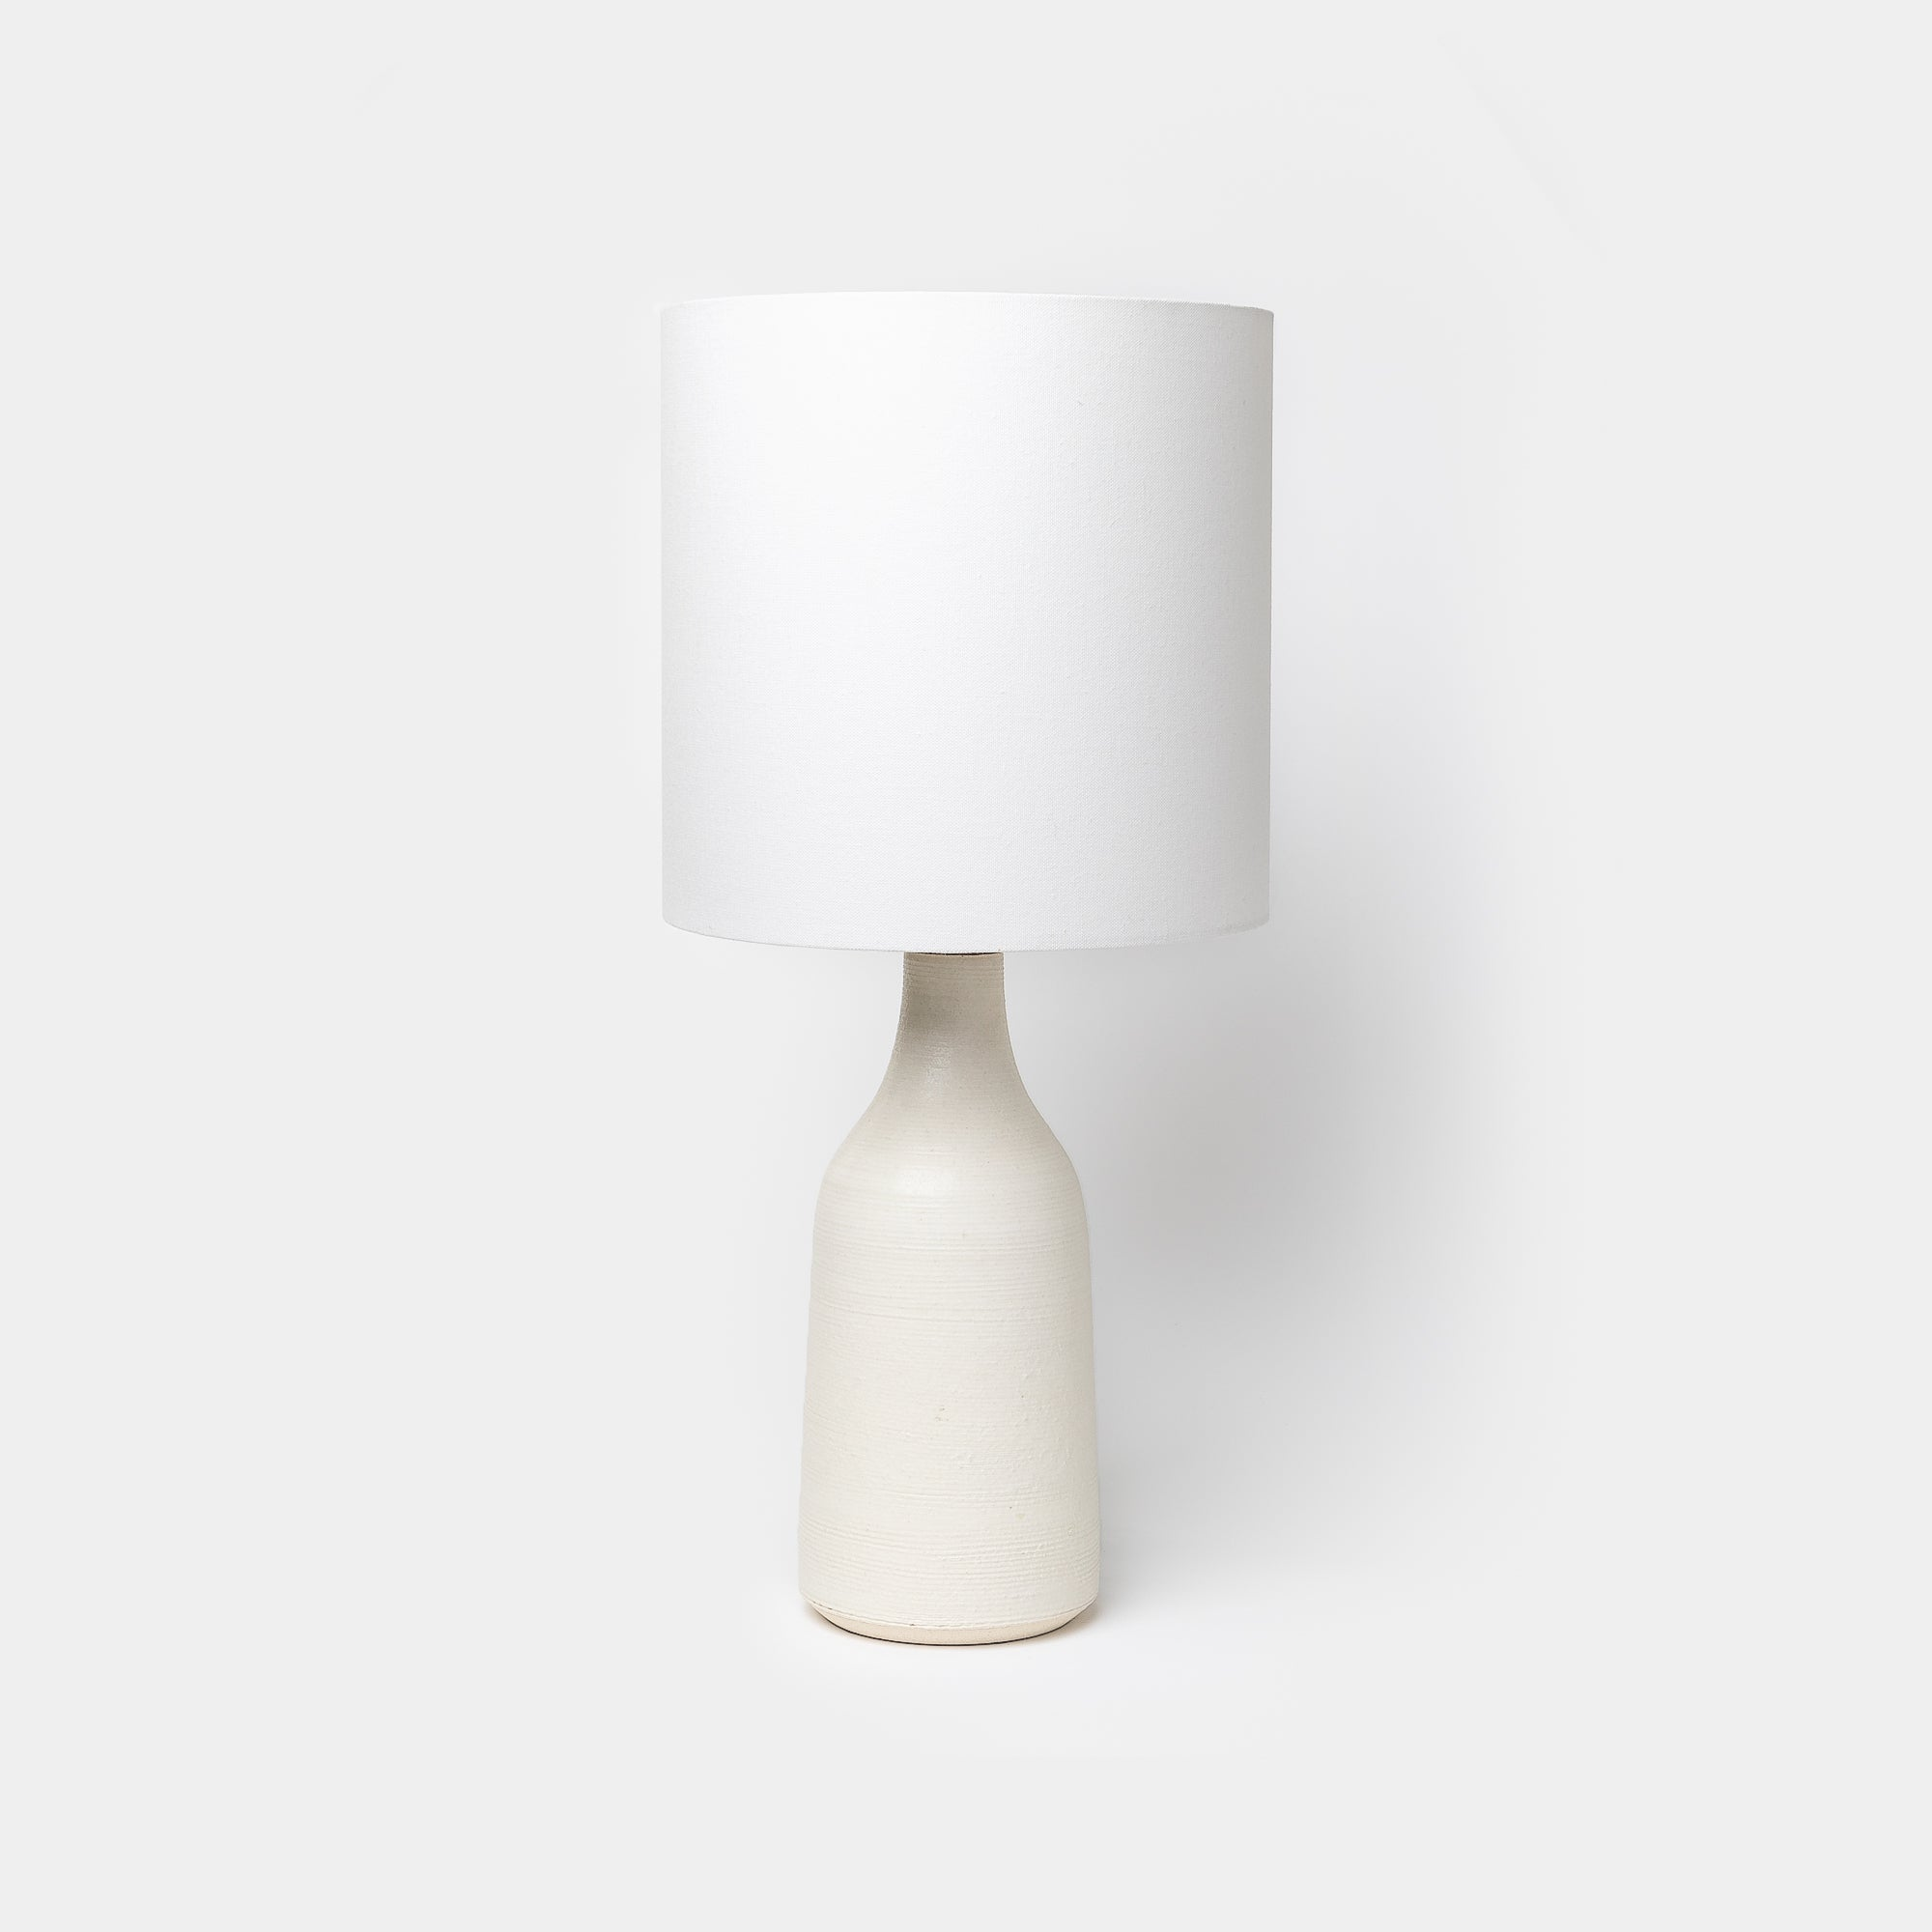 Ivory Ribbed Bottle Lamp by Victoria Morris